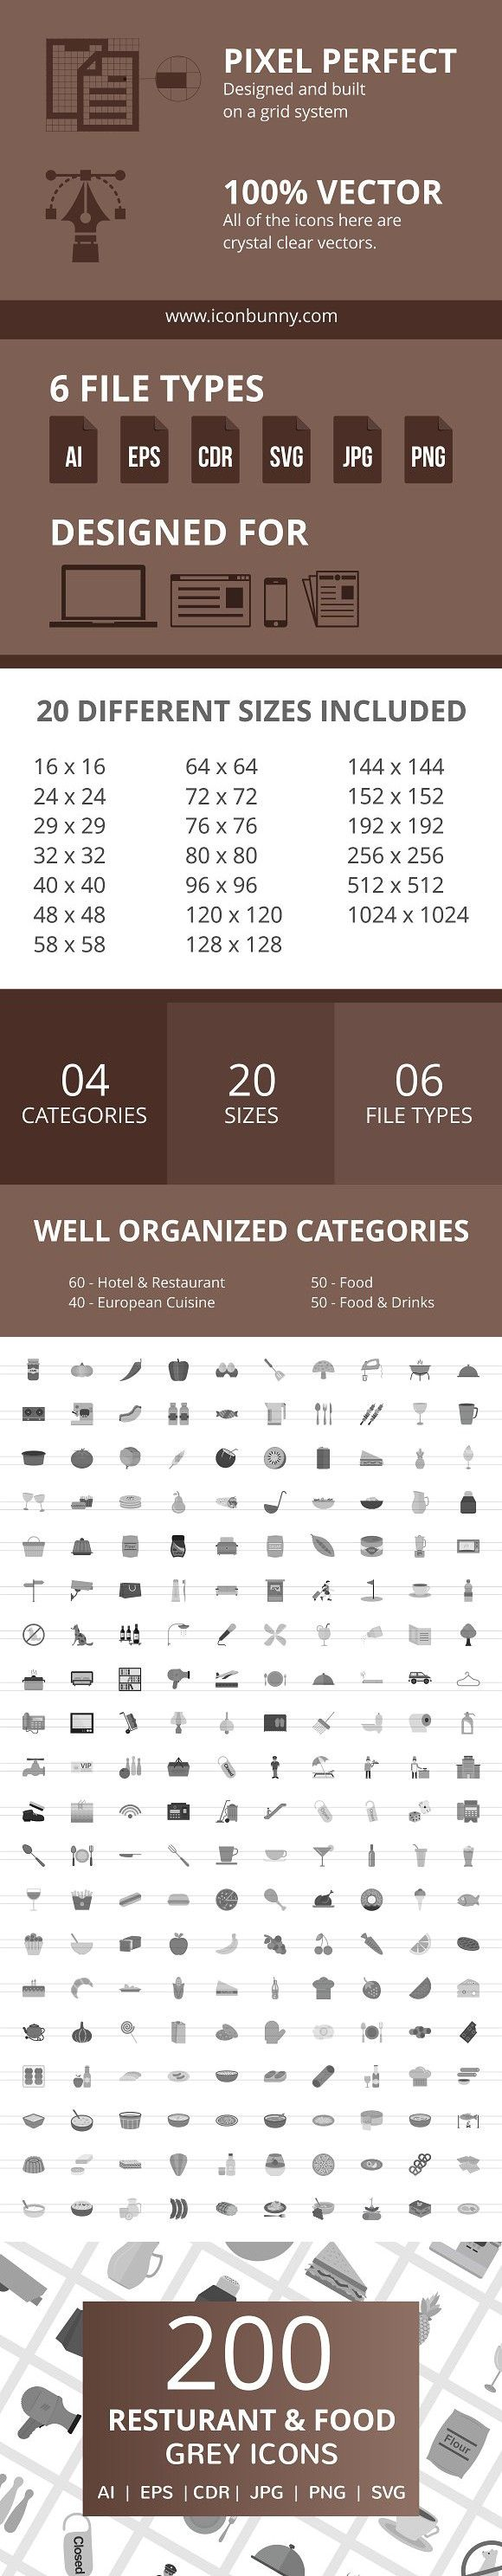 200 Restaurant & Food Grey Icons shapes, Icon